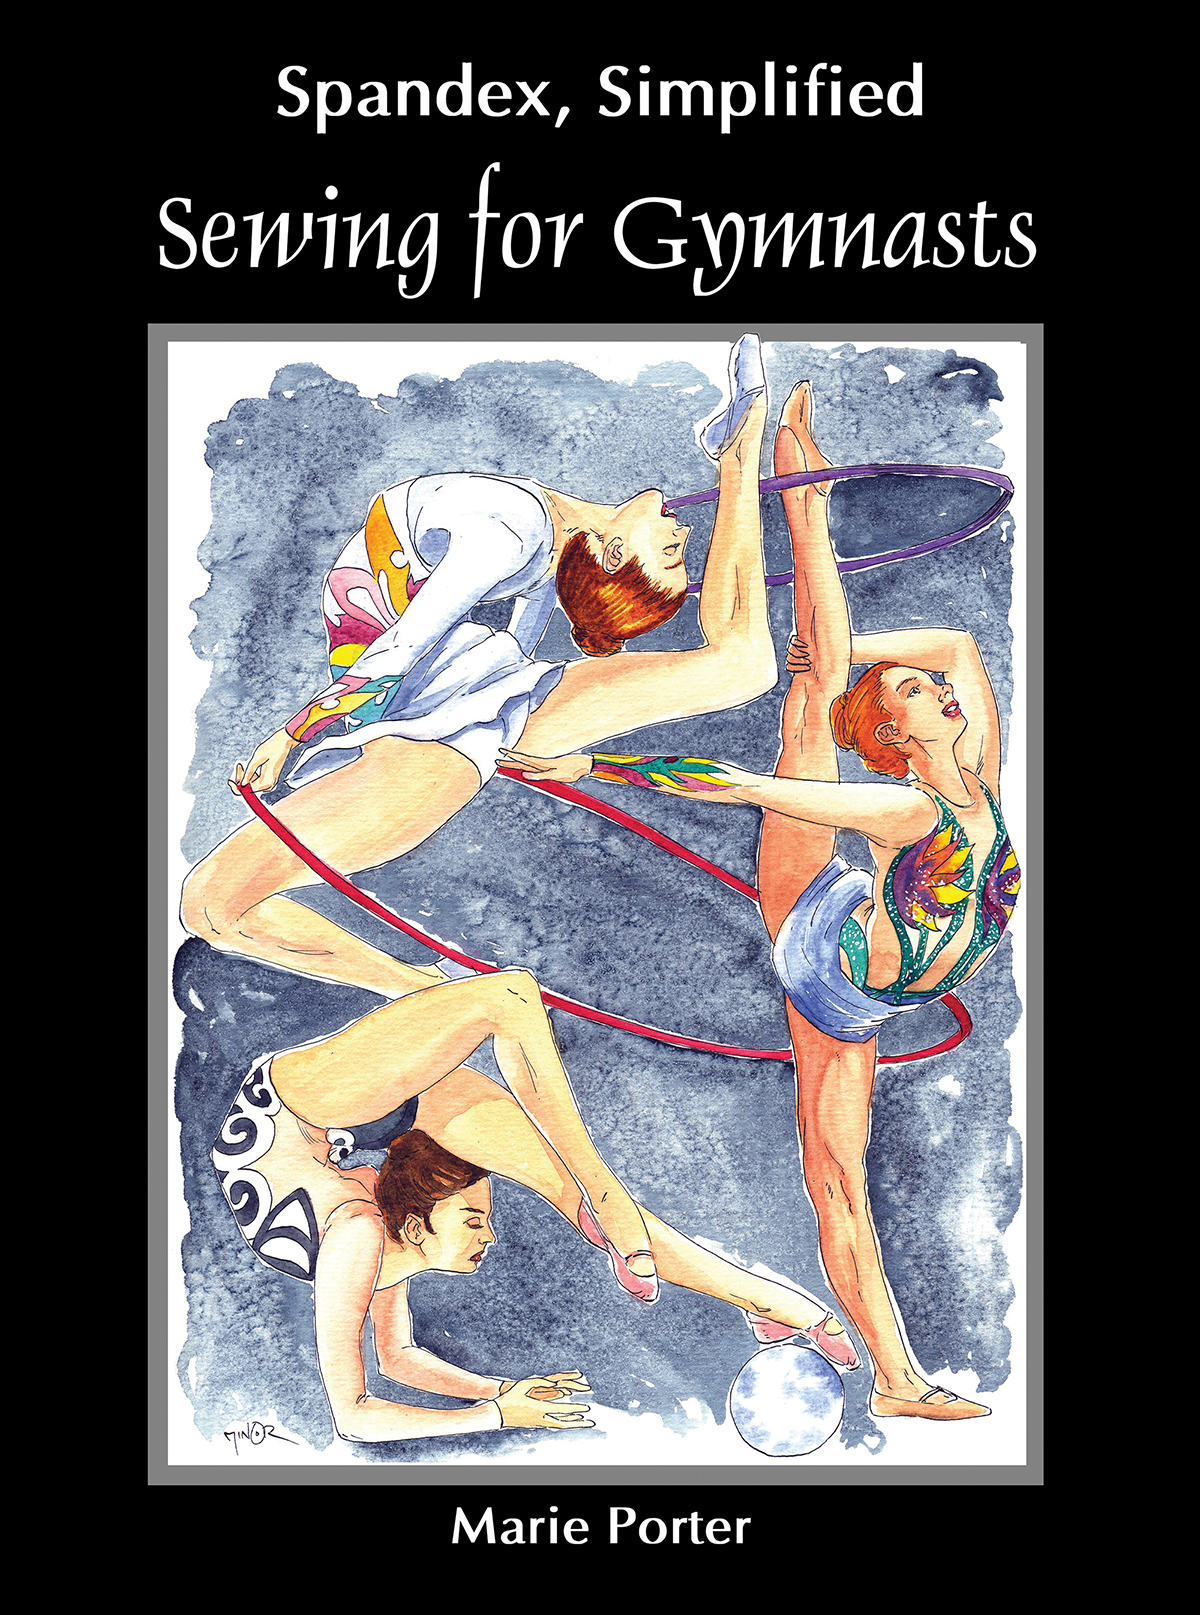 The cover image for Sewing for Gymnasts. A watercolour painting of 3 gymnasts in action, with a black border.